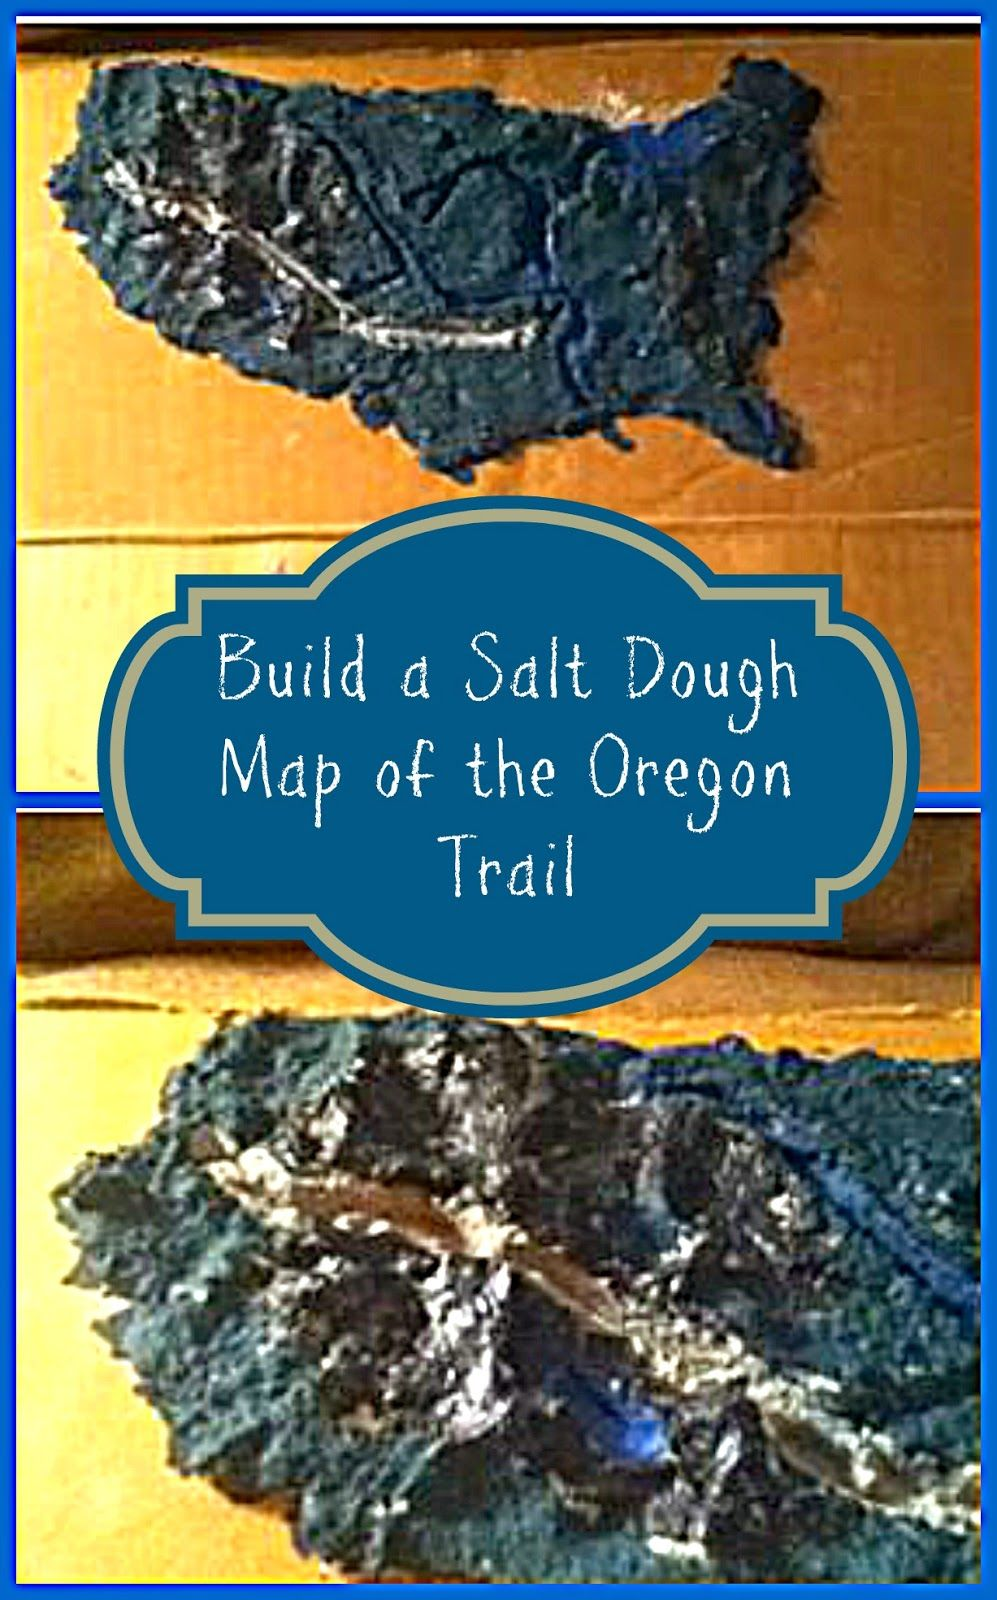 Step by step instructions to build a salt dough map of the Oregon Trail